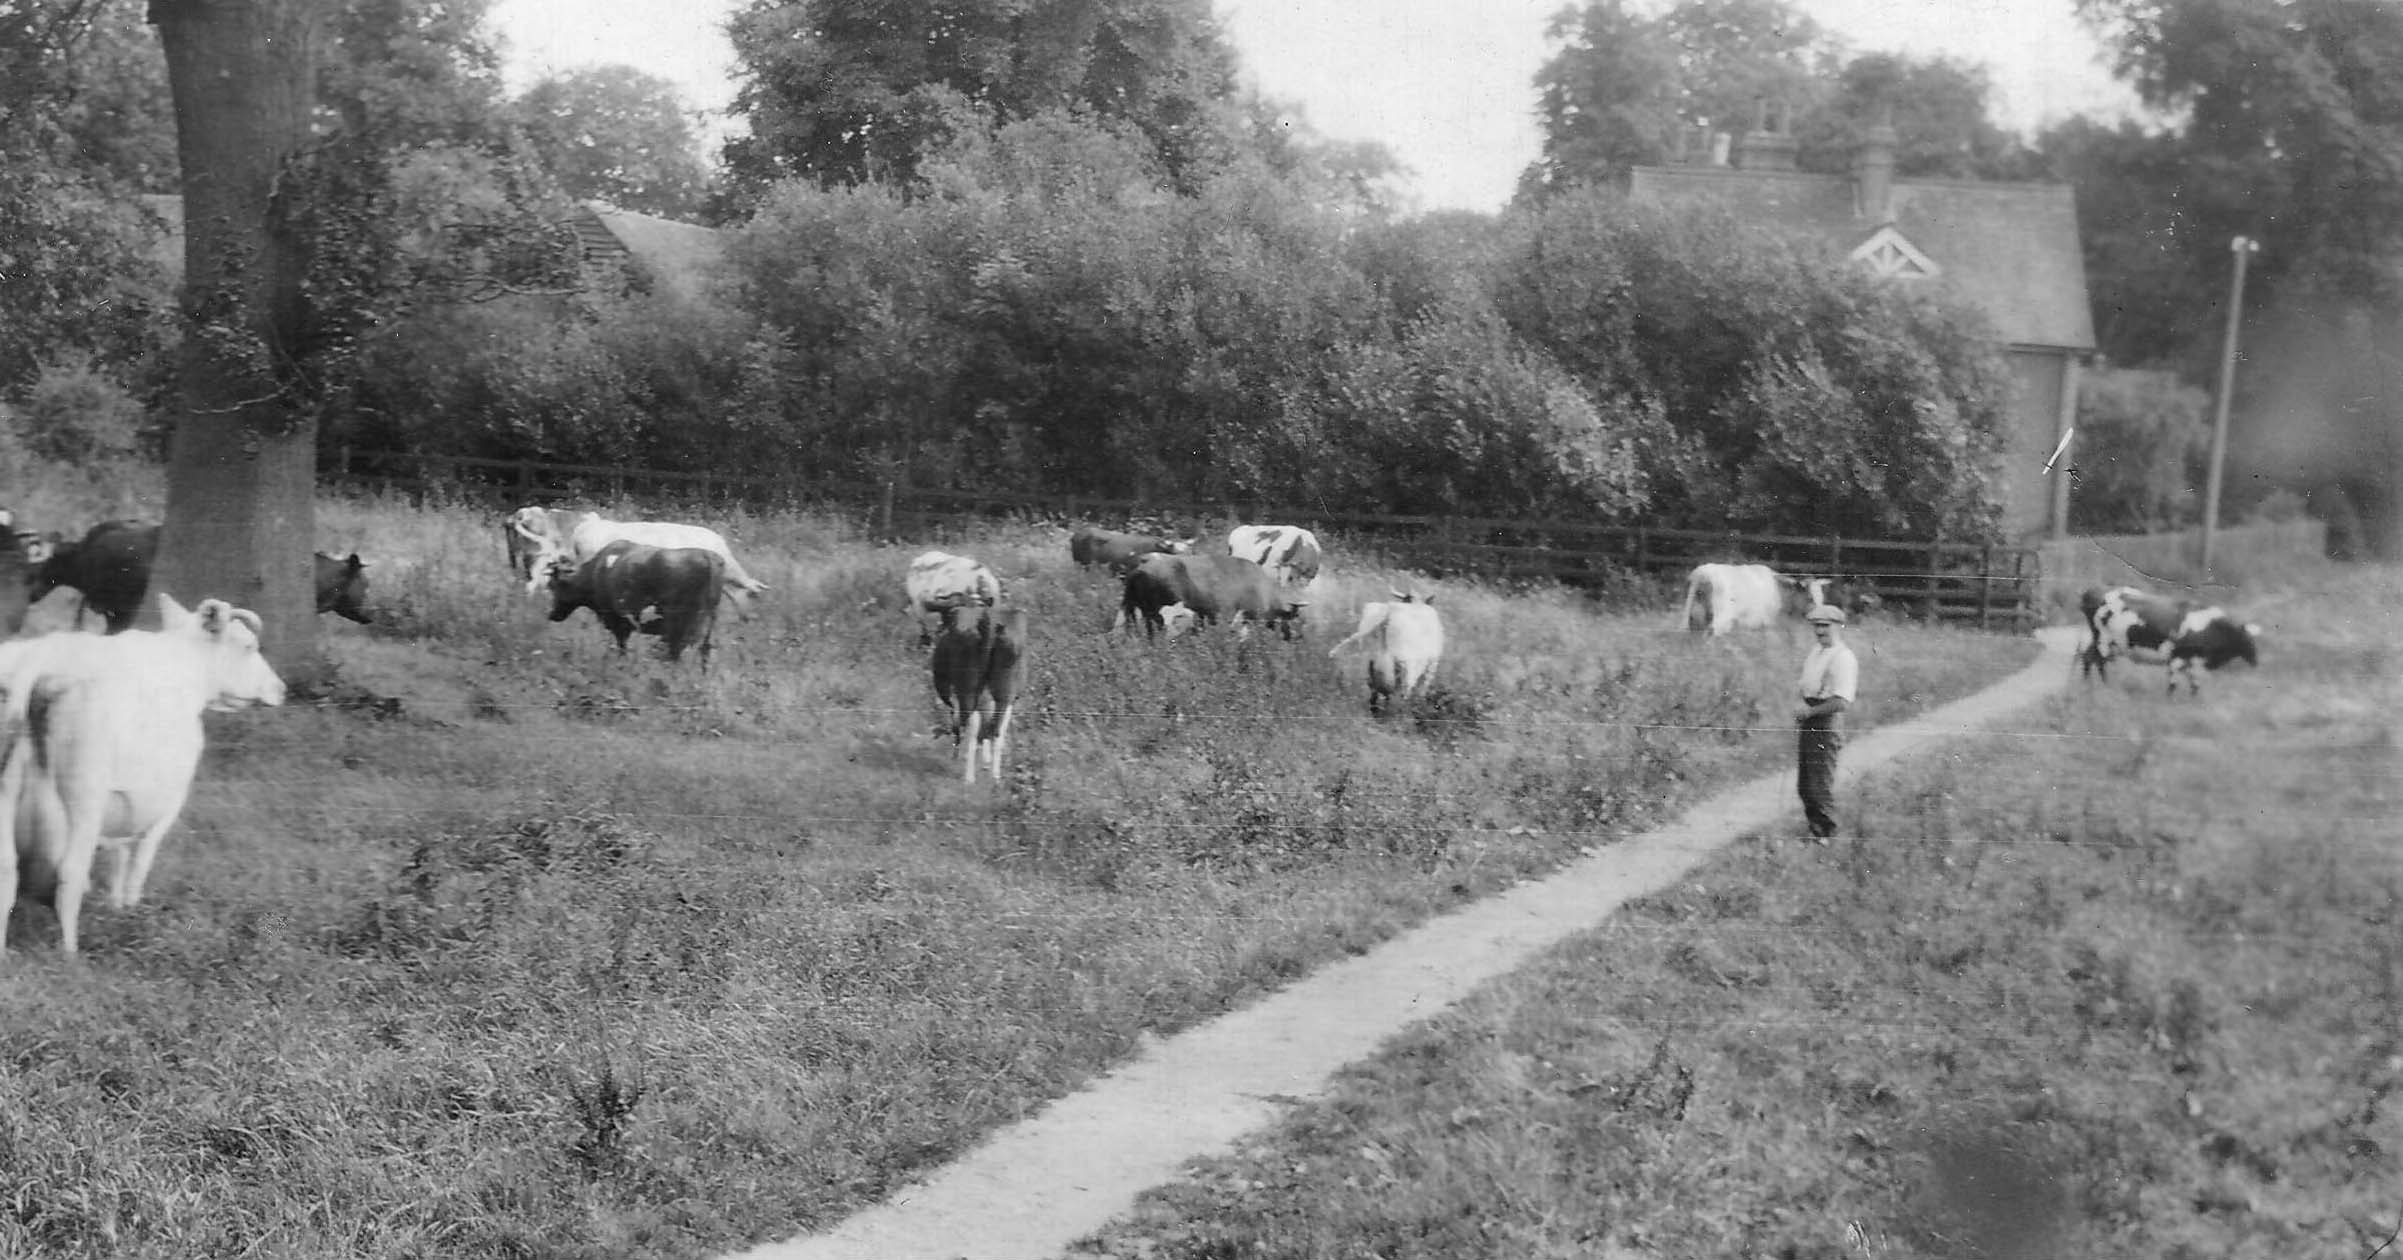 Cows in field at Sopwell